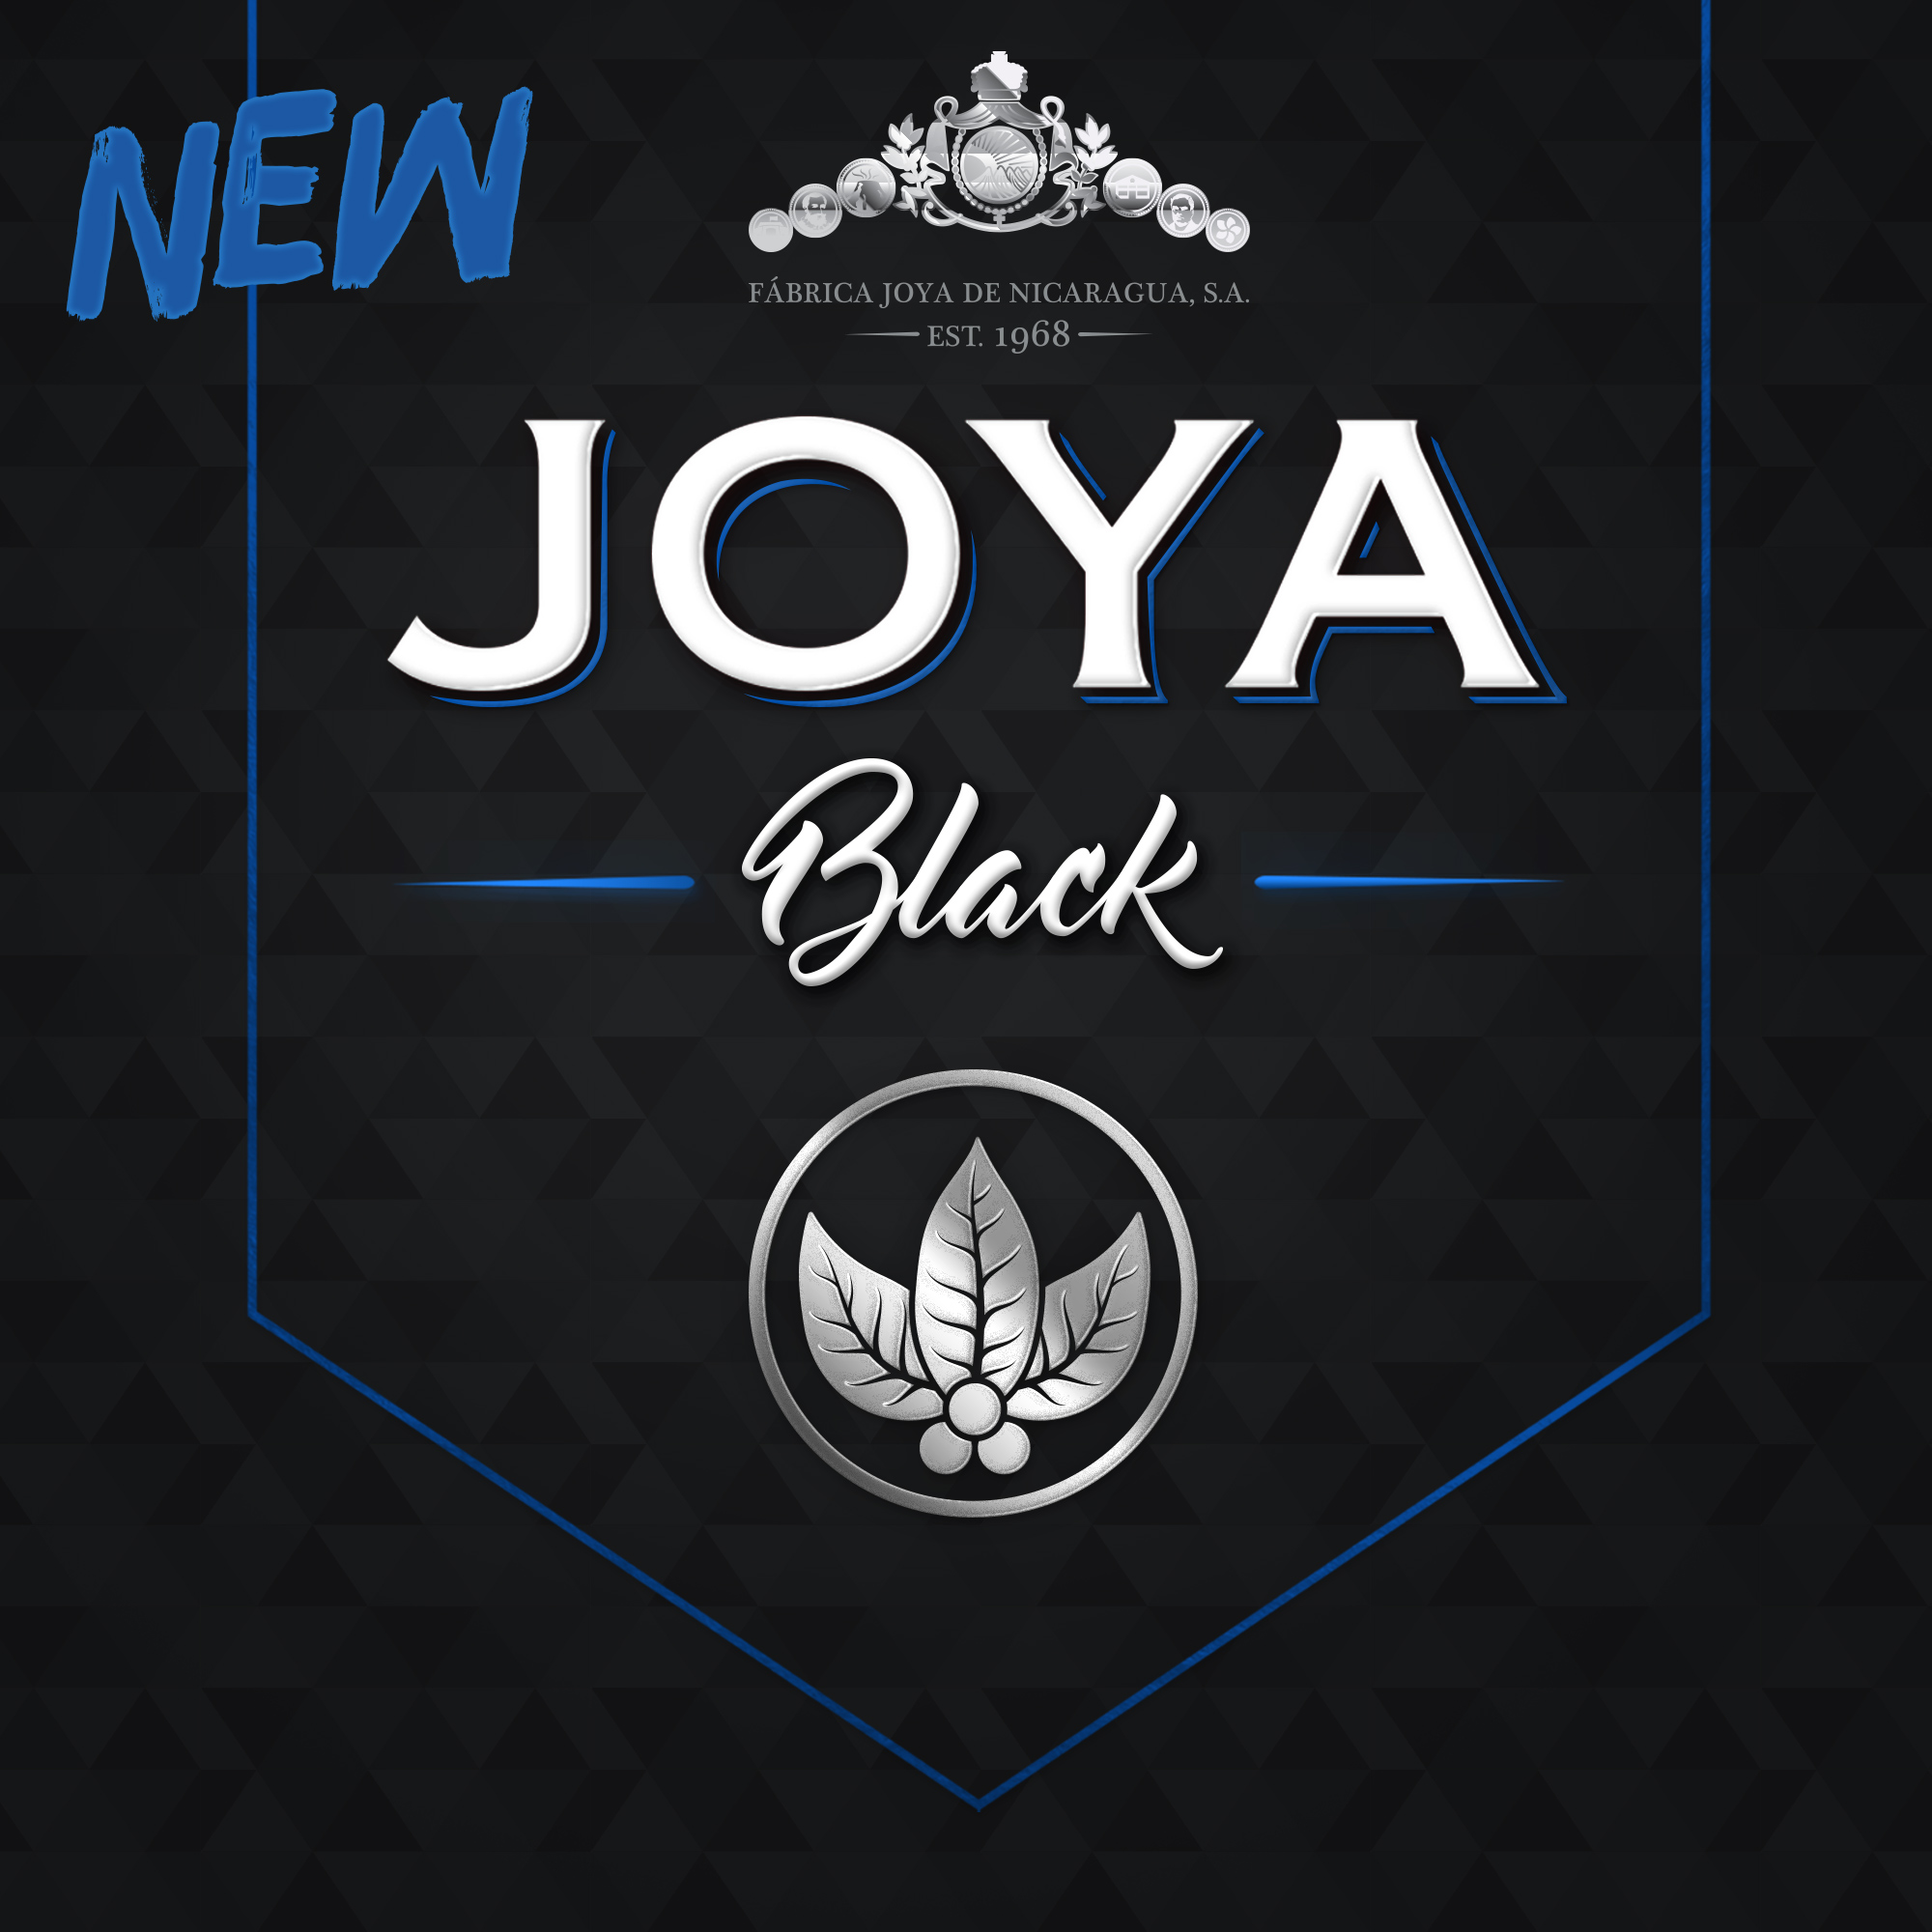 Cigar Insider Reports on the New Joya Black!